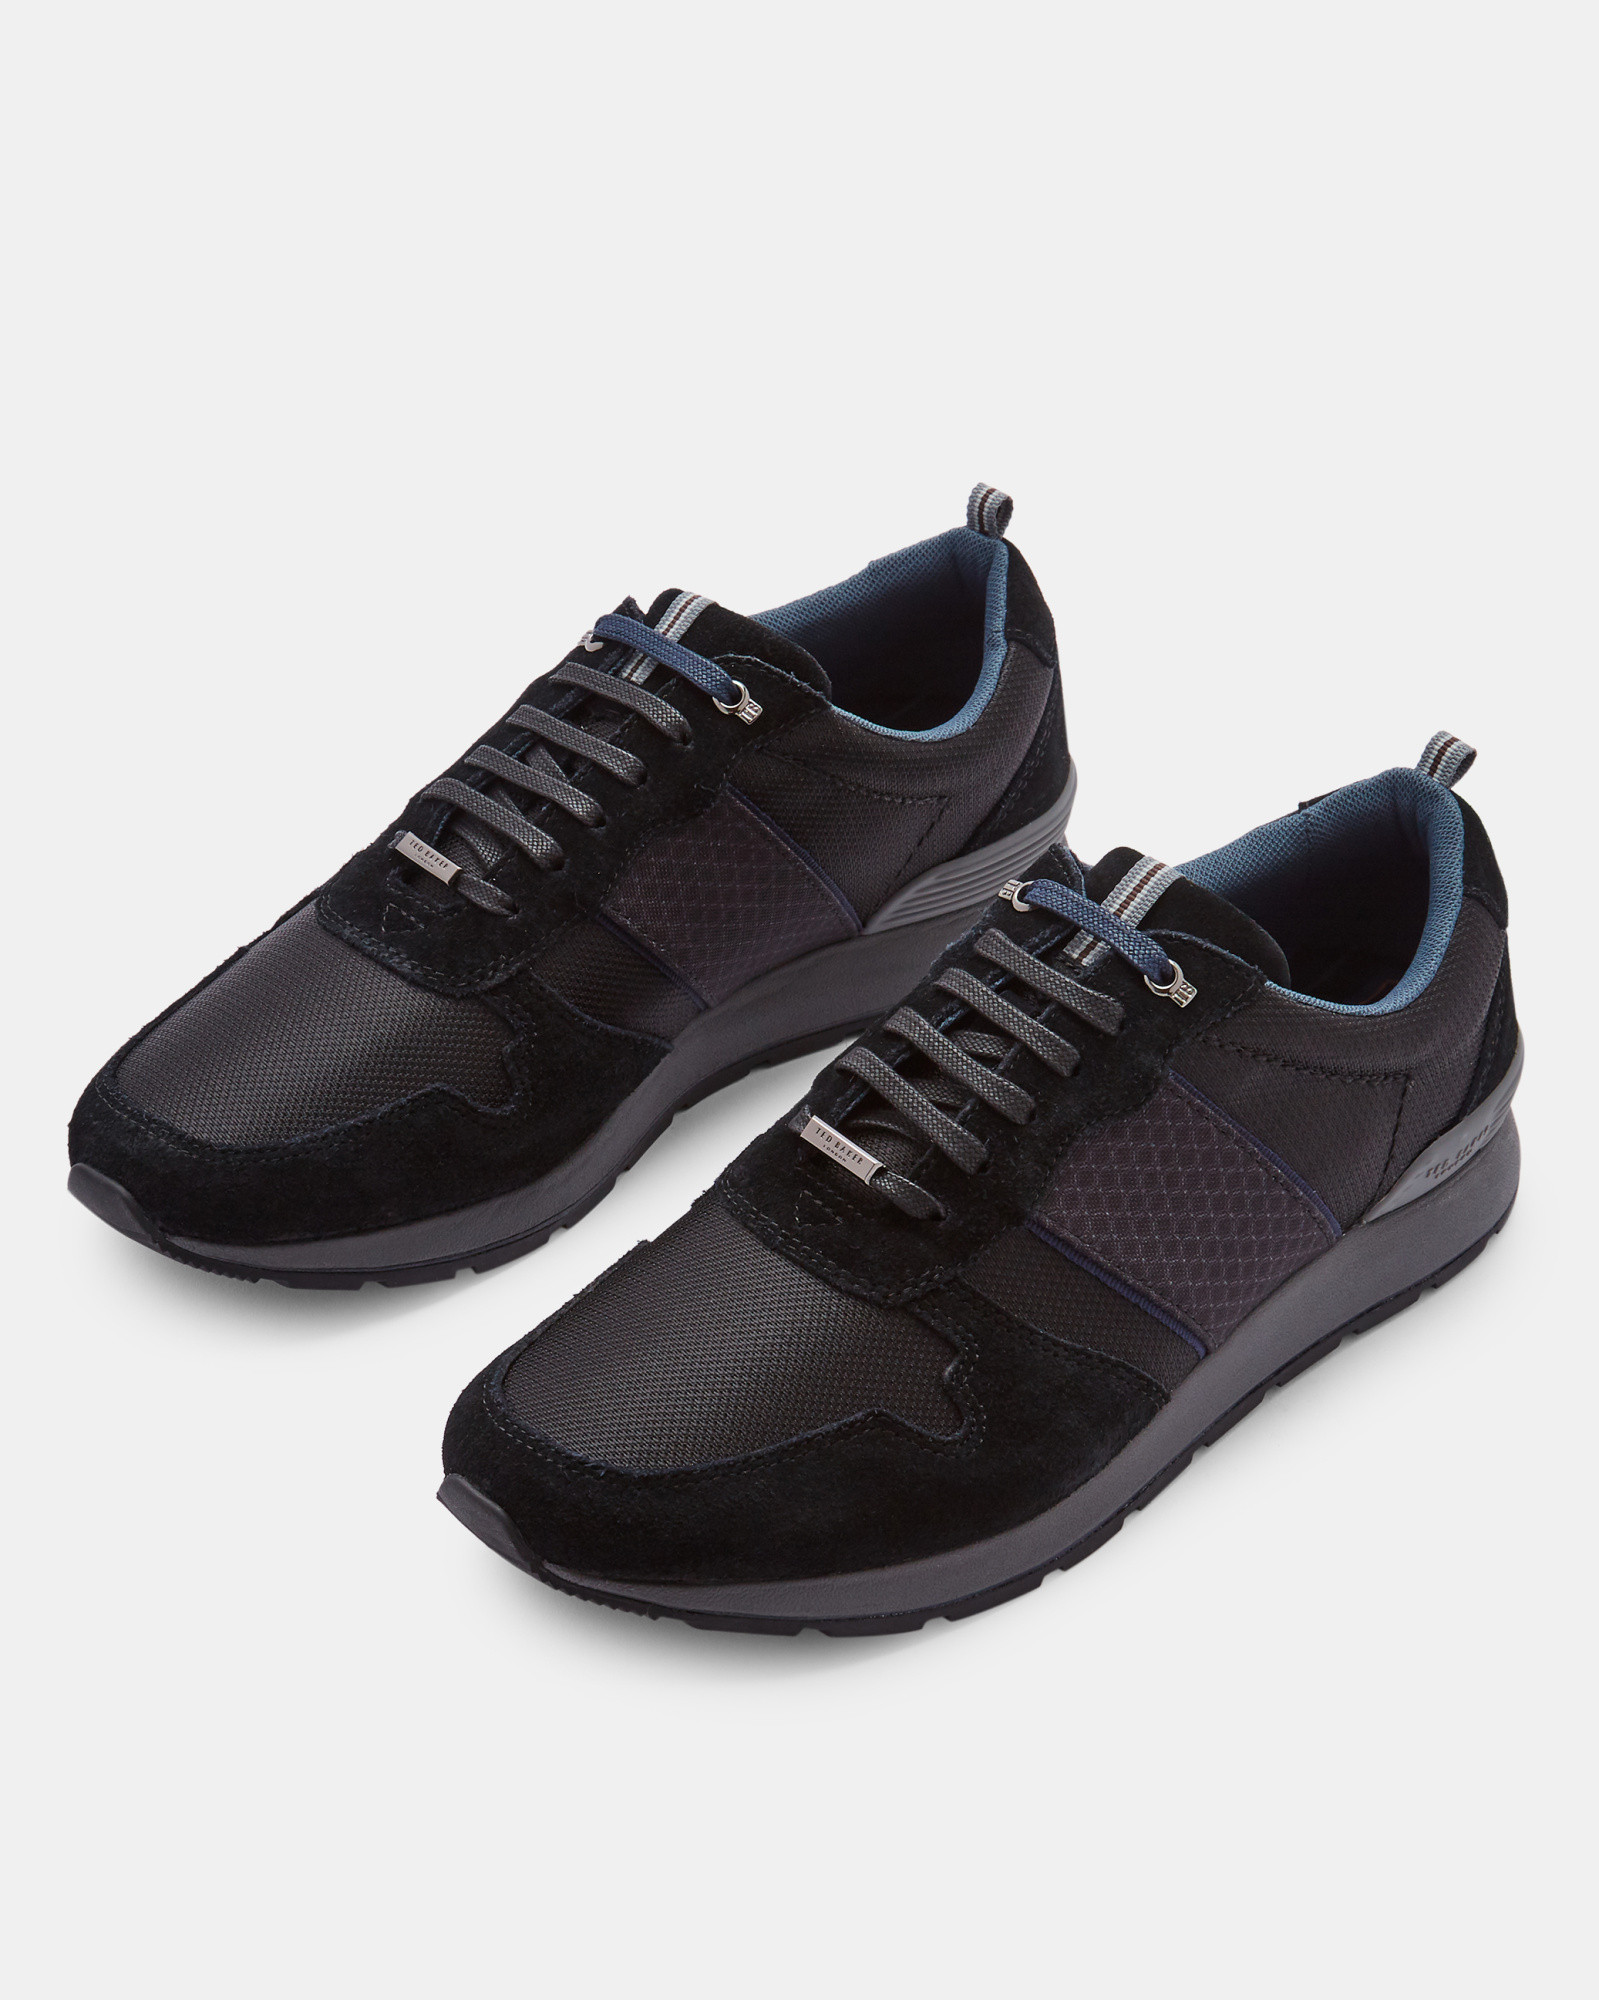 HEBEY Classic running trainers by Ted